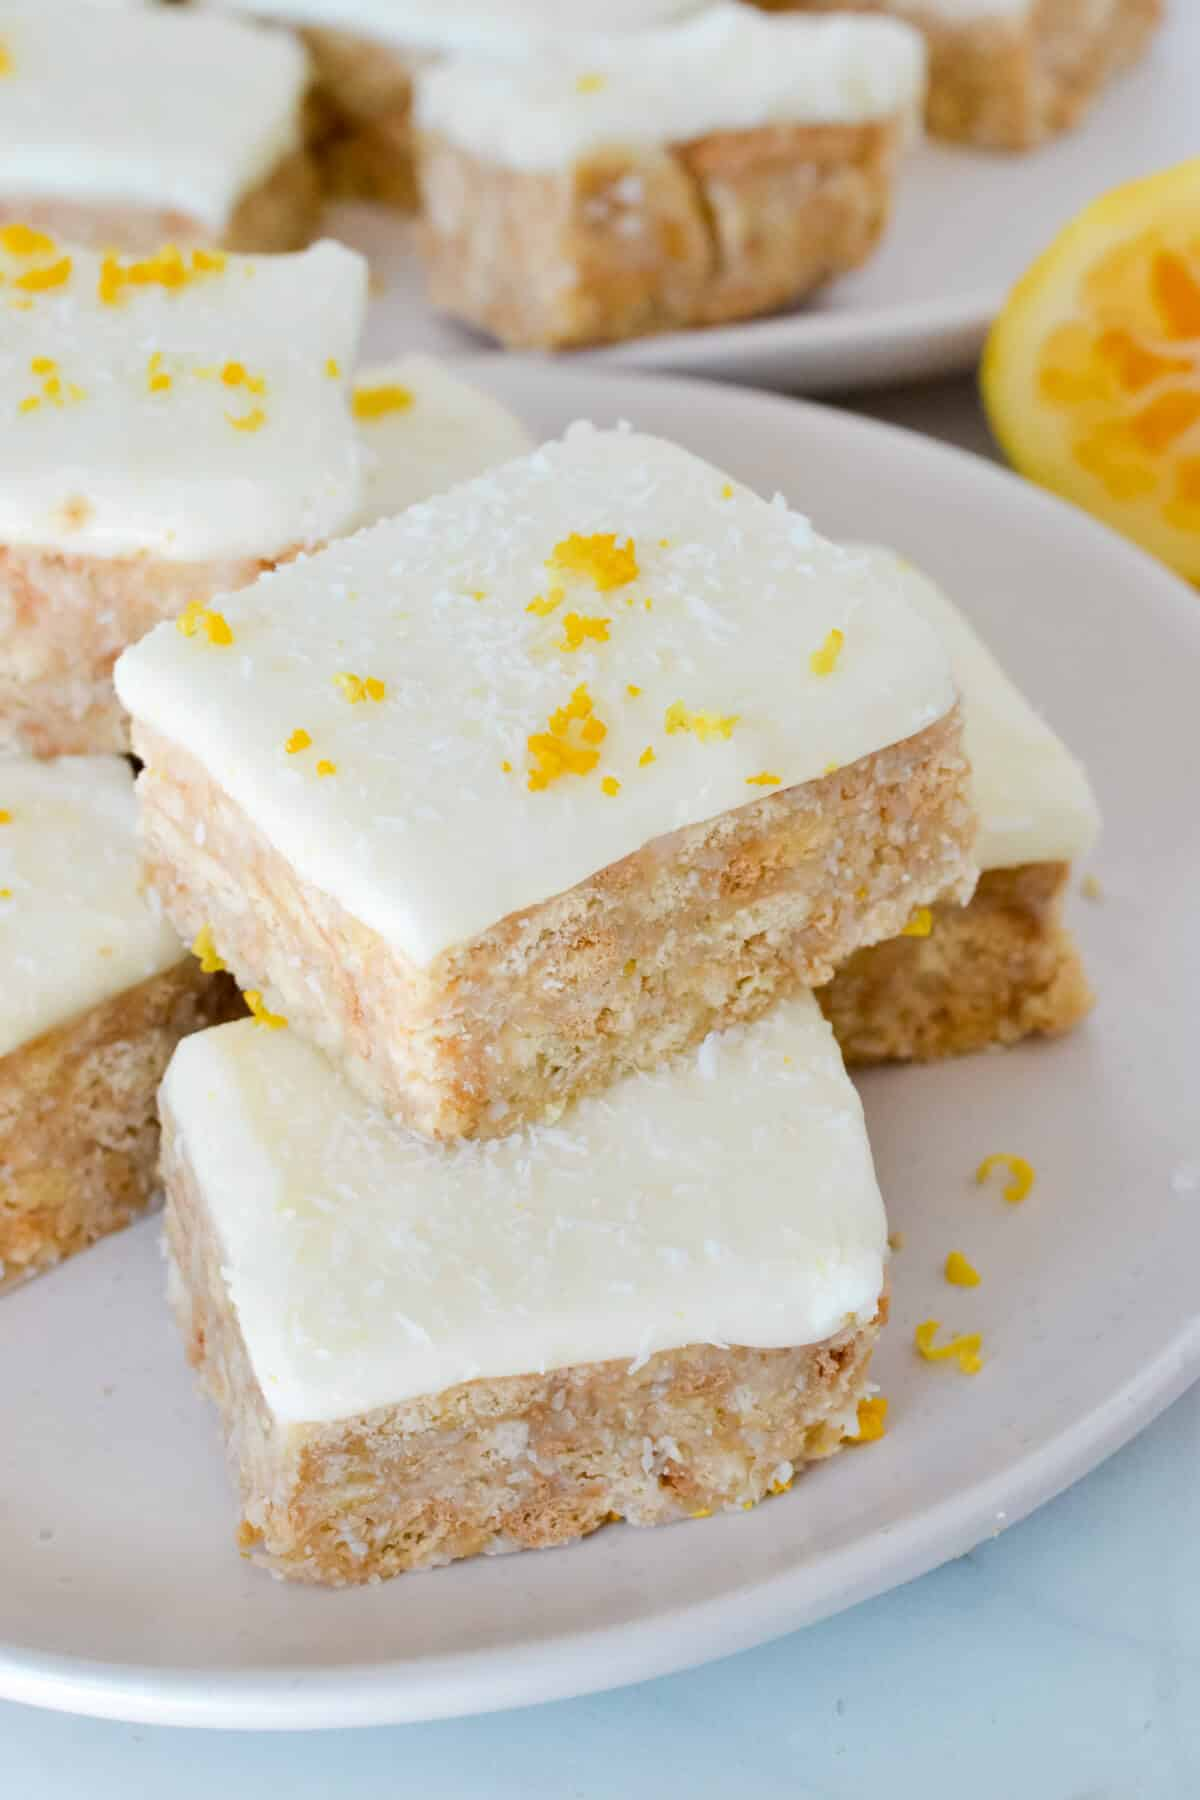 pieces of lemon slice topped with zest on a white plate